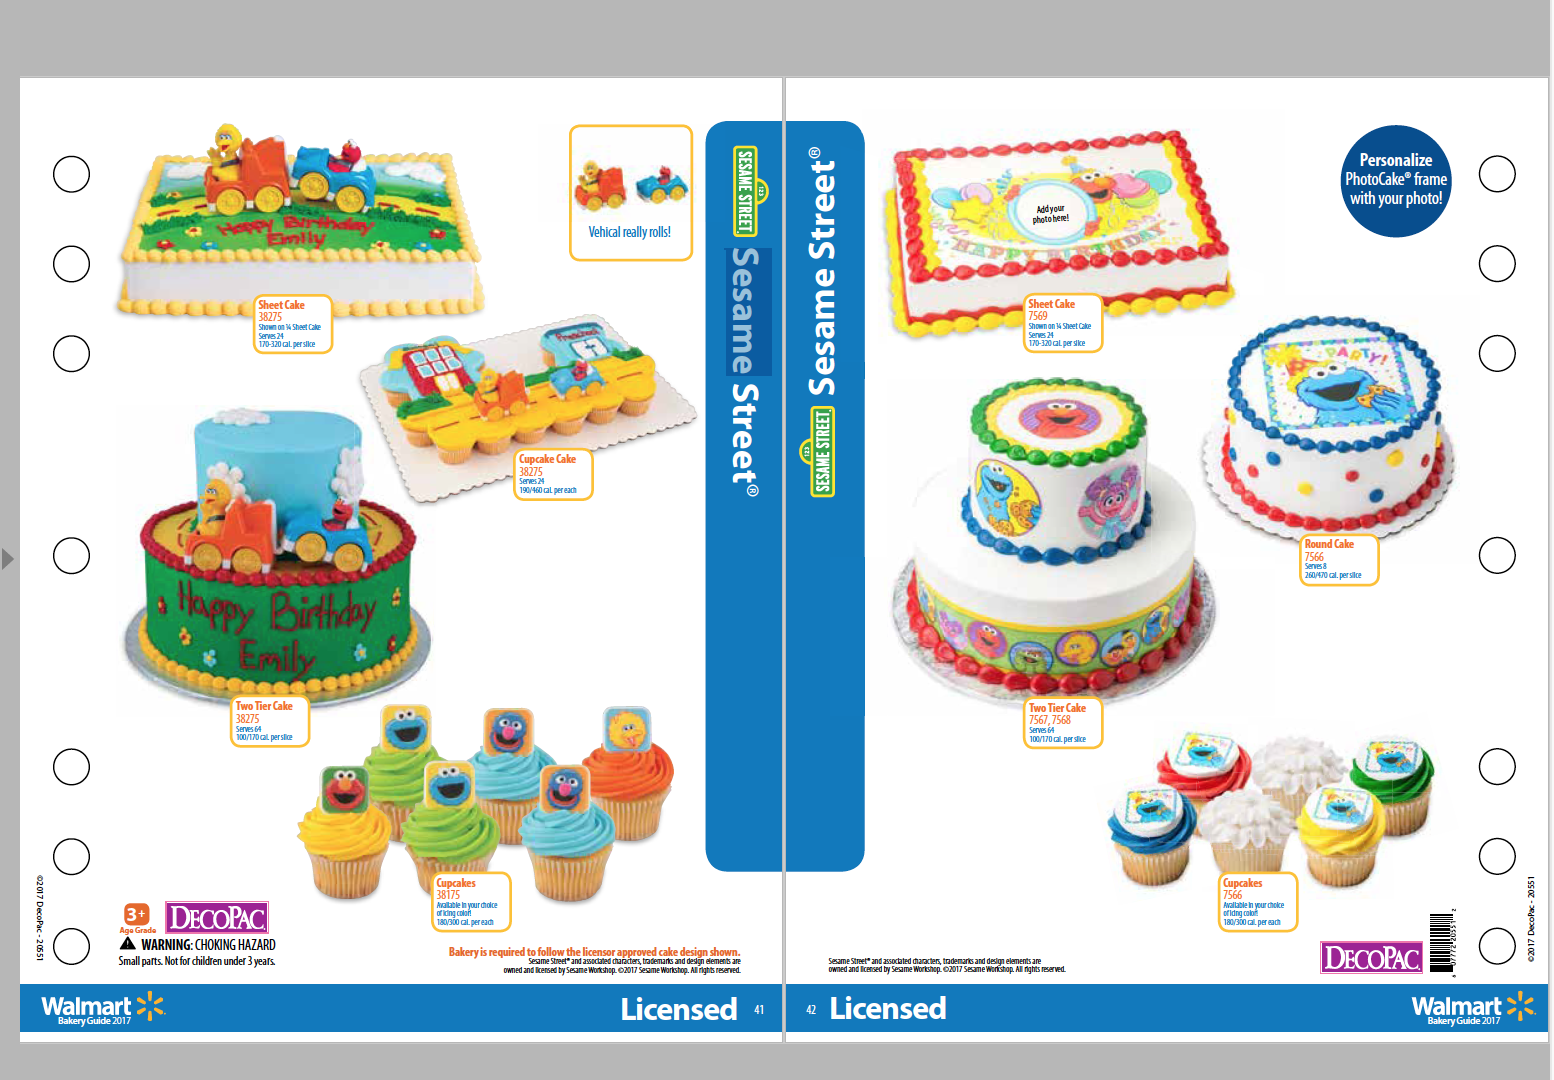 Enjoyable Cakes For Any Occasion With Images Walmart Cakes Cake Sesame Birthday Cards Printable Benkemecafe Filternl